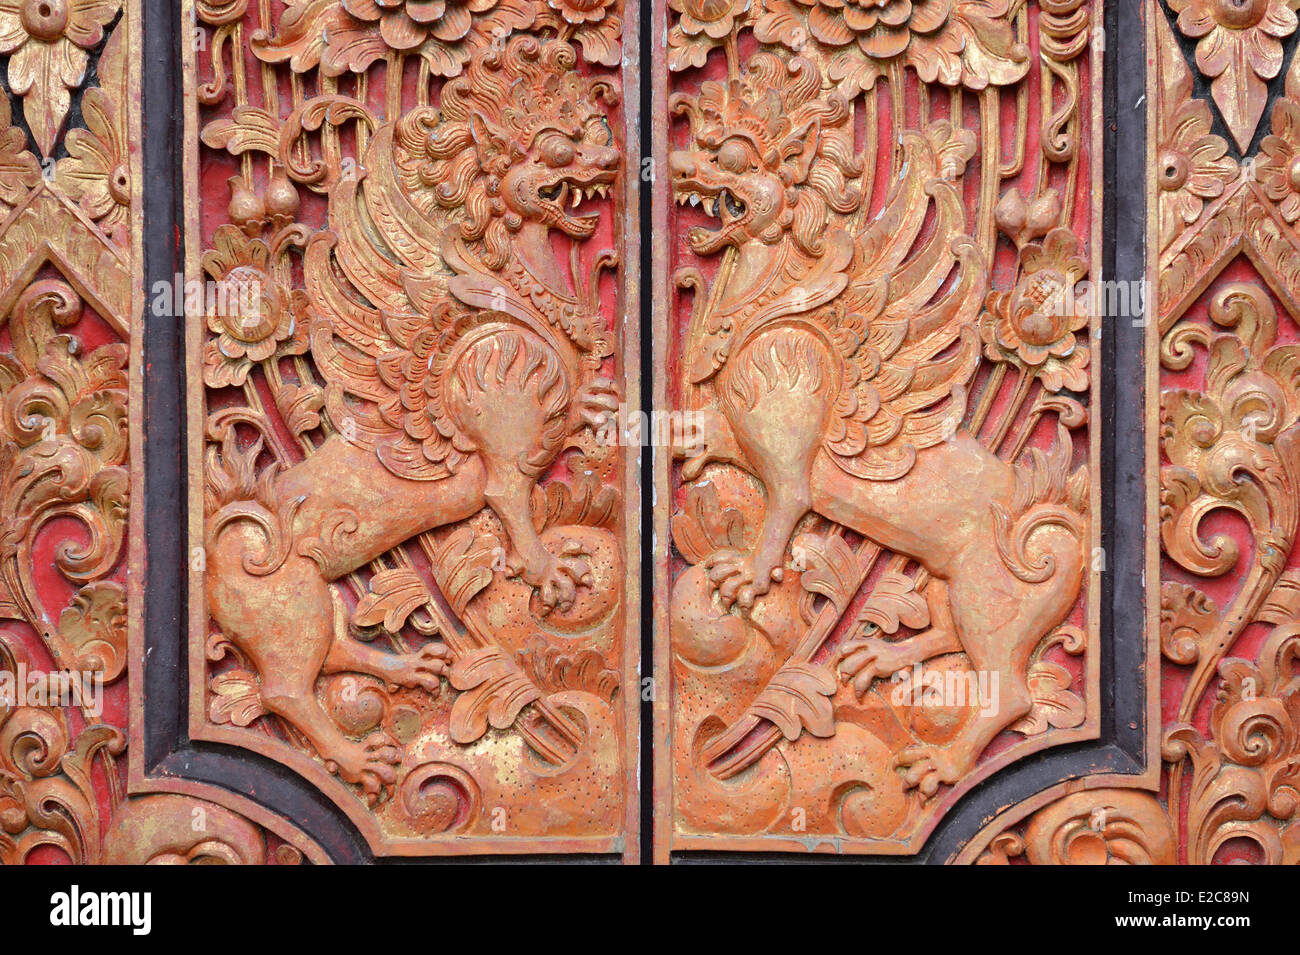 Indonesia, Bali, Ubud, detail of a temple - Stock Image